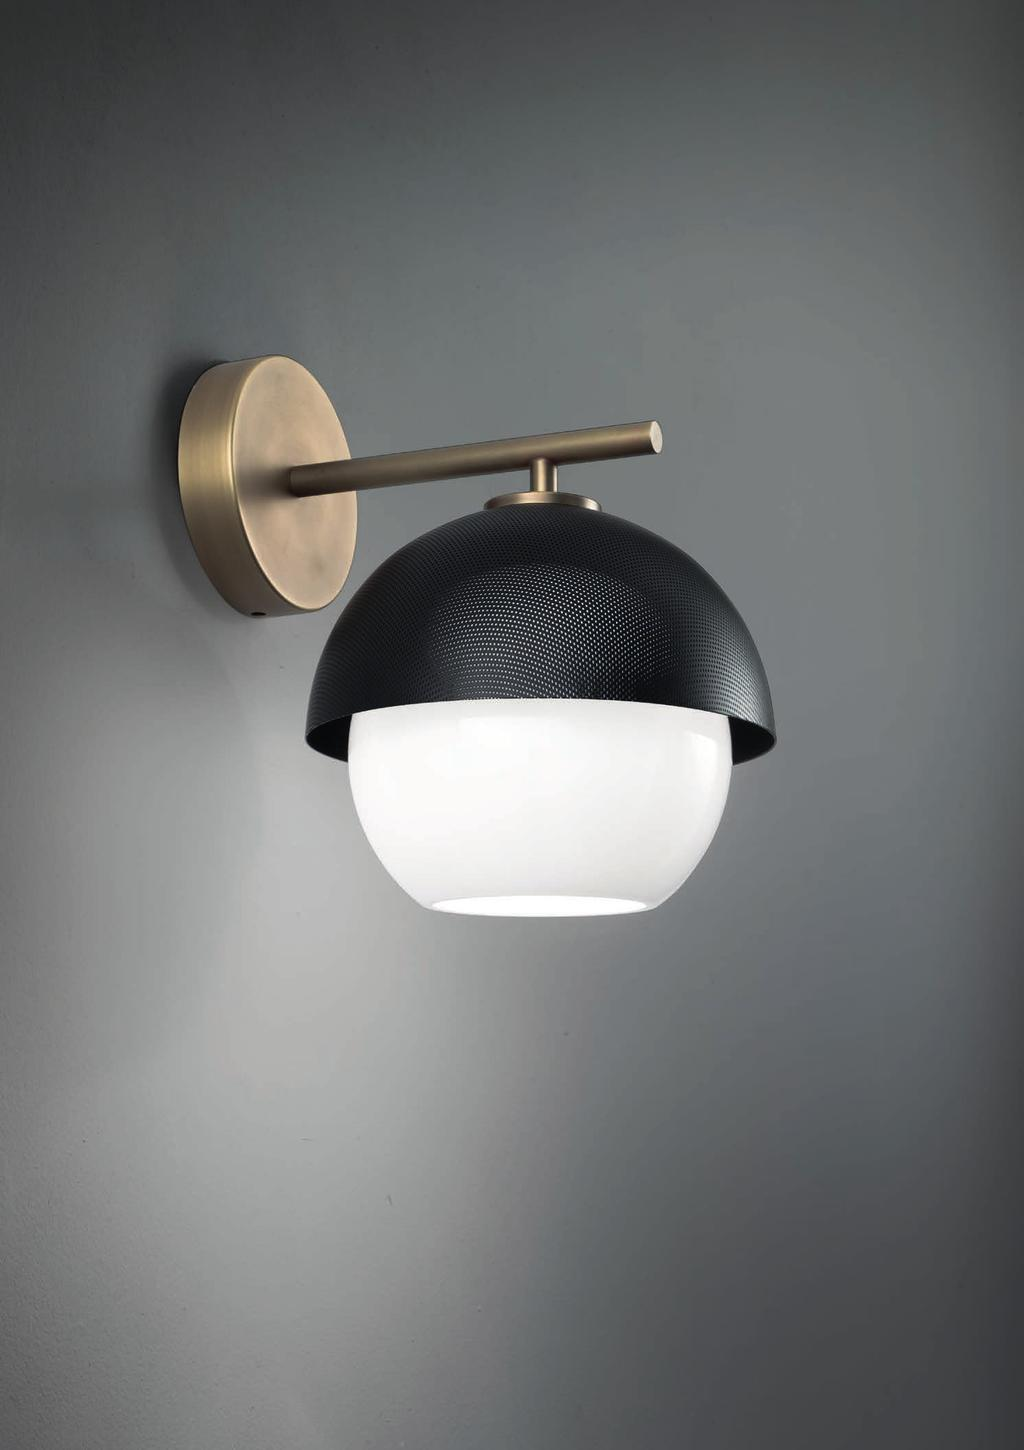 URBAN WALL 26cm-10 20cm-7 8 25cm-9 8 Wall lamp with diffuse light and white, tobacco or smoke Murano blown glass diffuser.